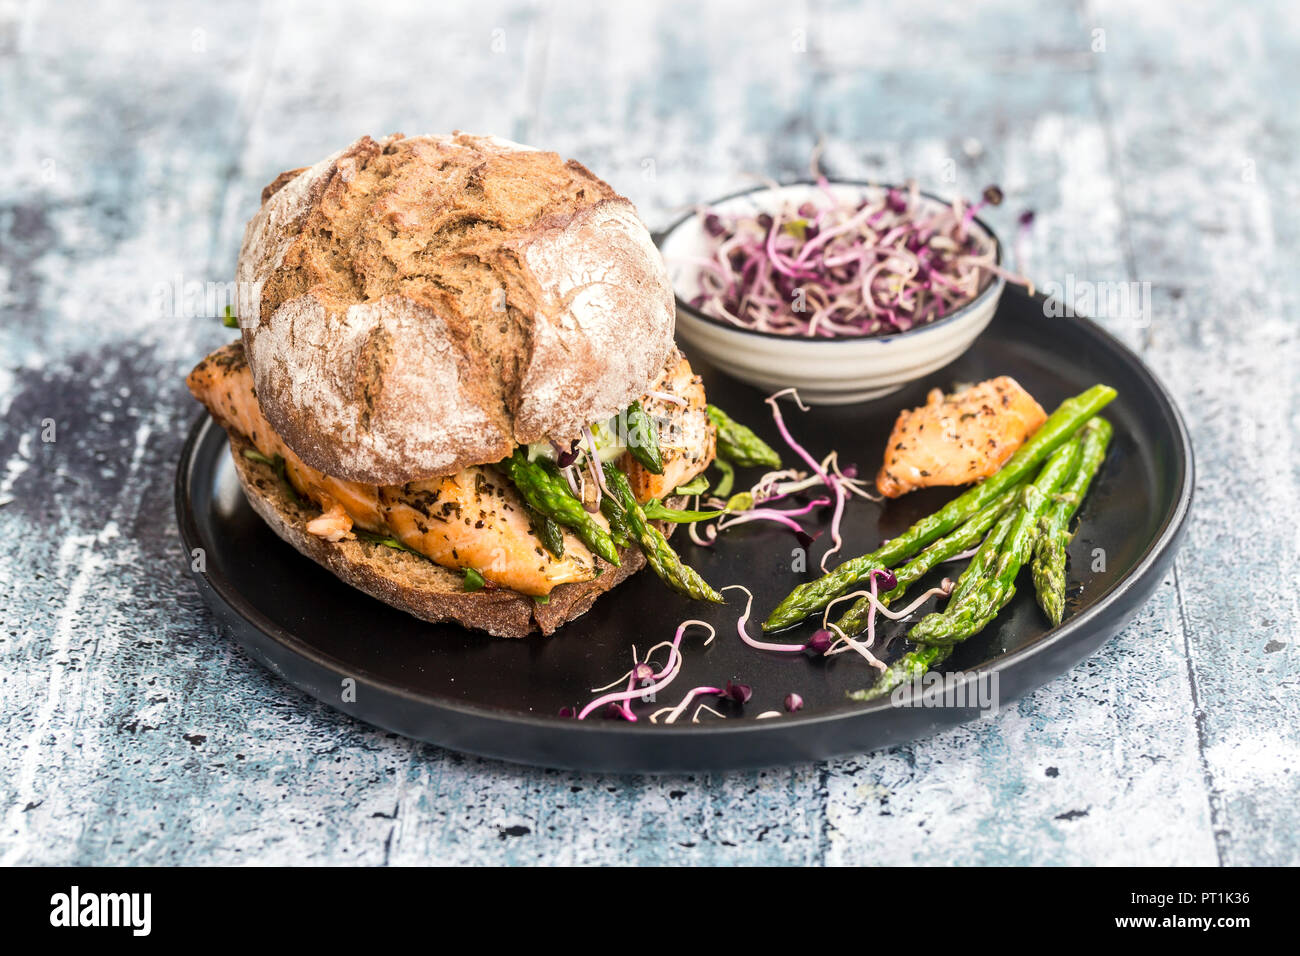 Salmon burger with green asparagus and red cress on plate Stock Photo